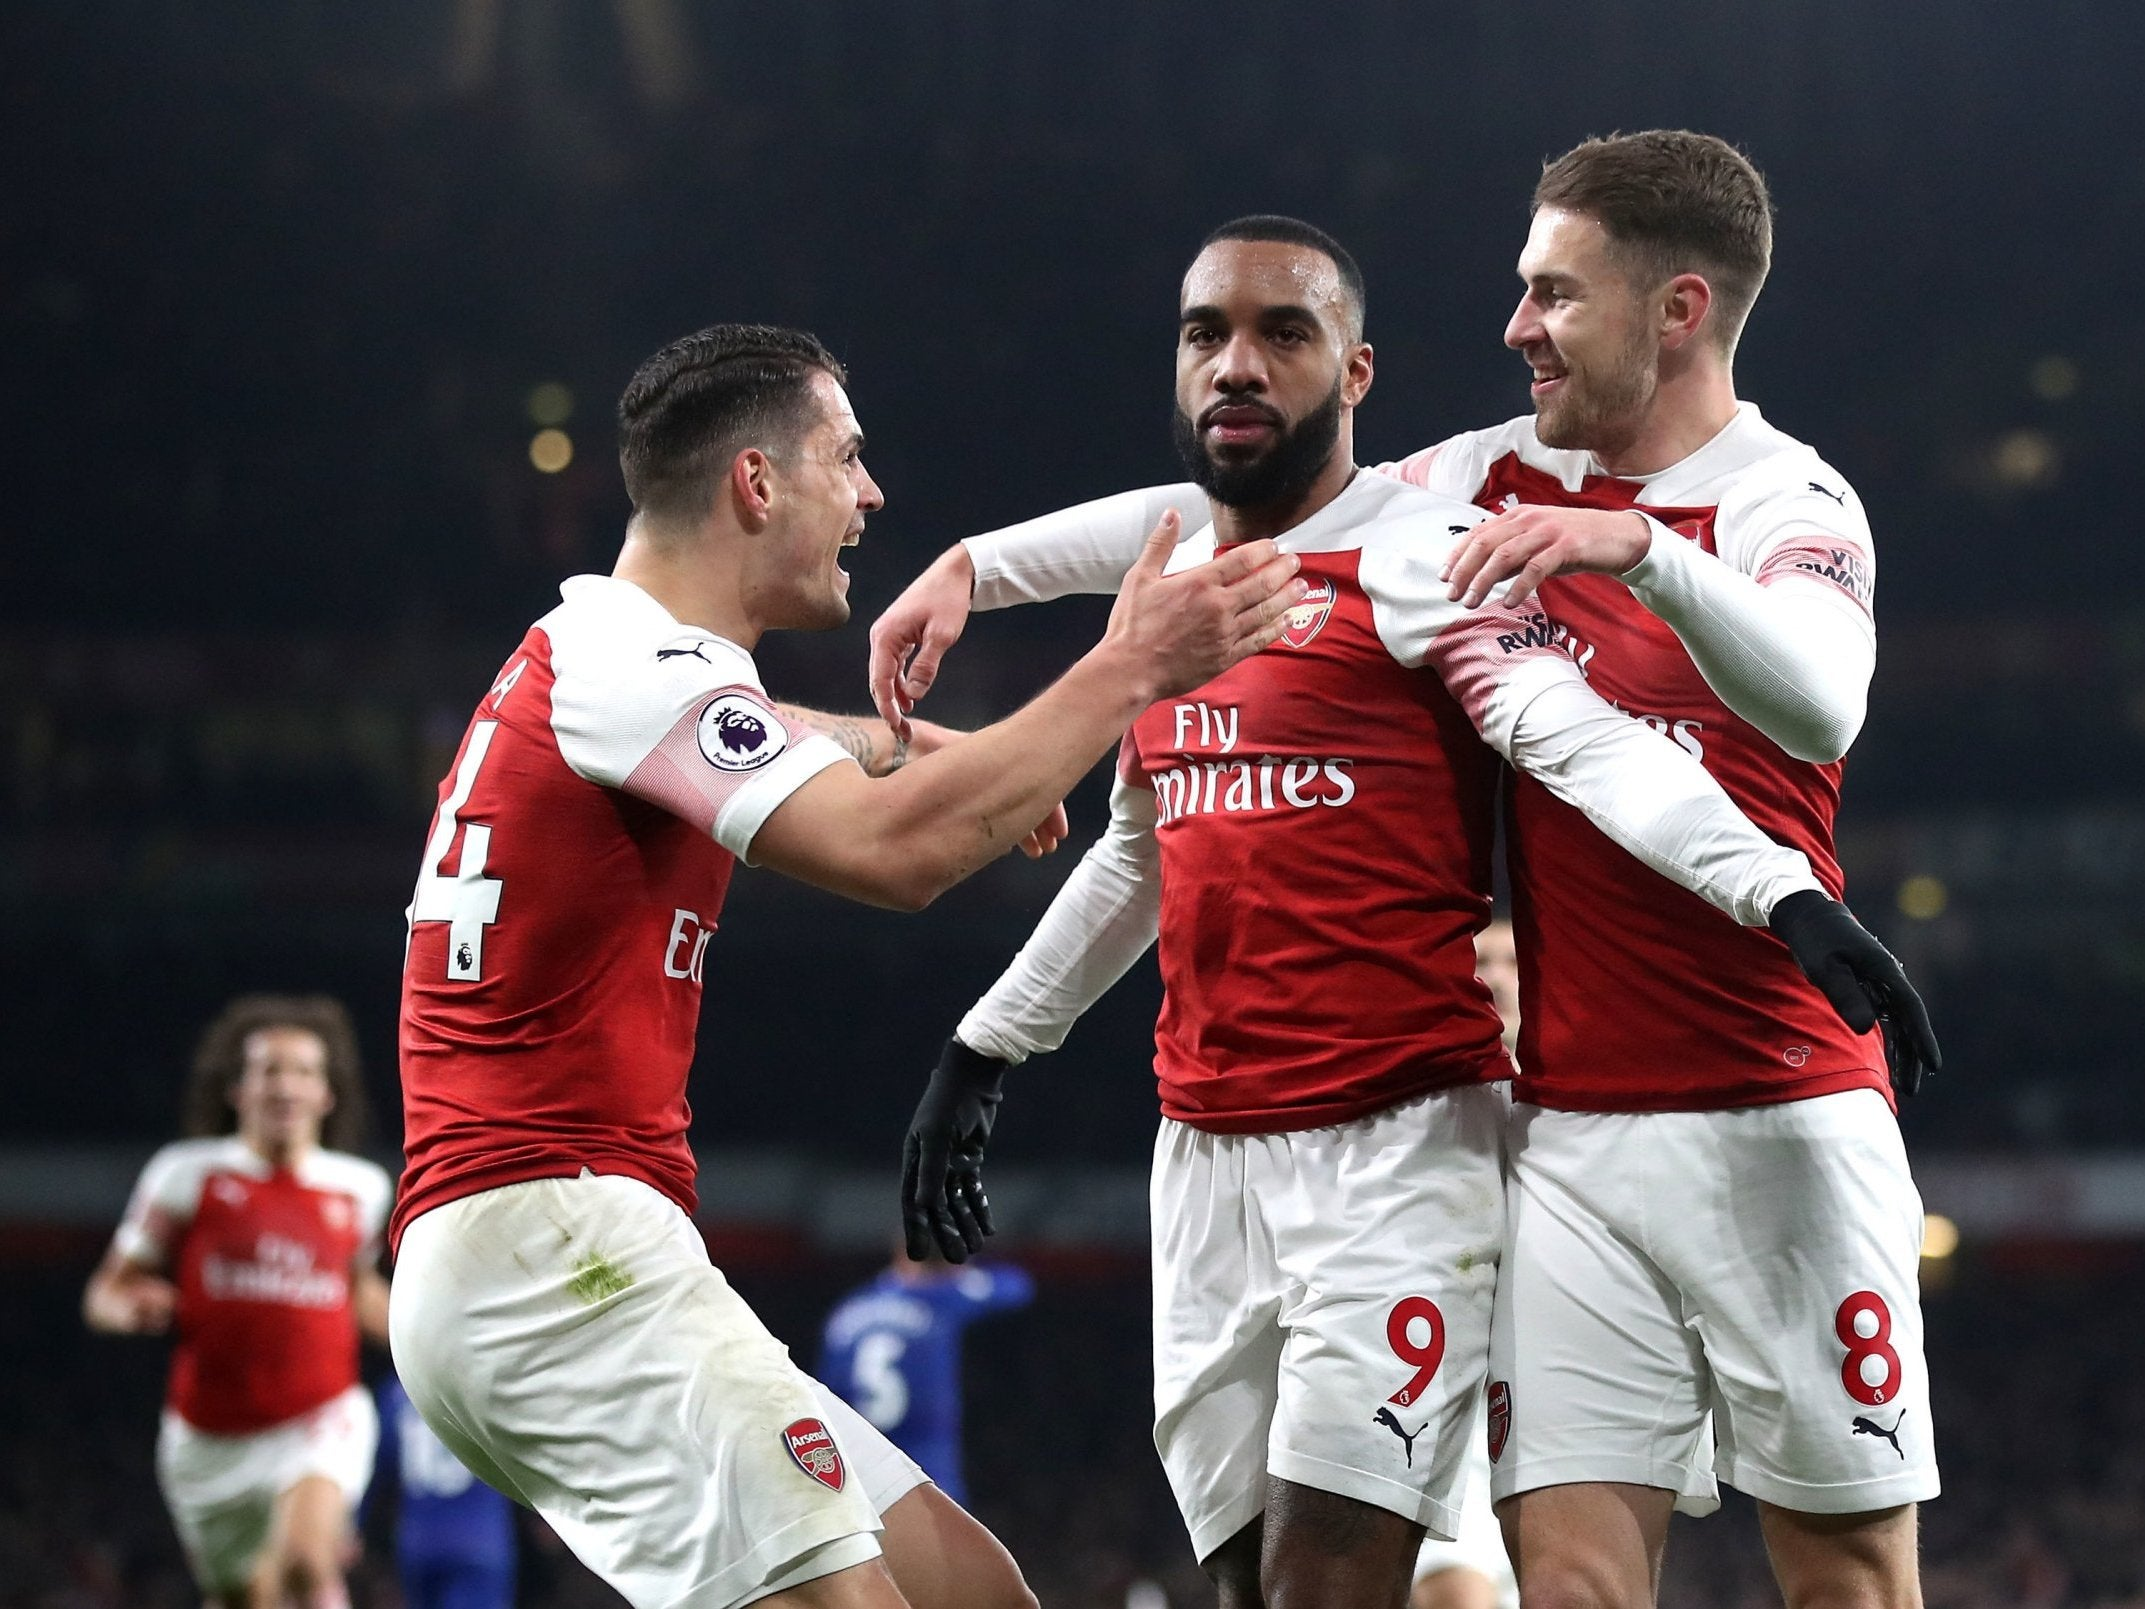 e30122c329d Arsenal outdo Chelsea for force and will in unusual display of unity as  Maurizio Sarri s Blues continue to lack focus